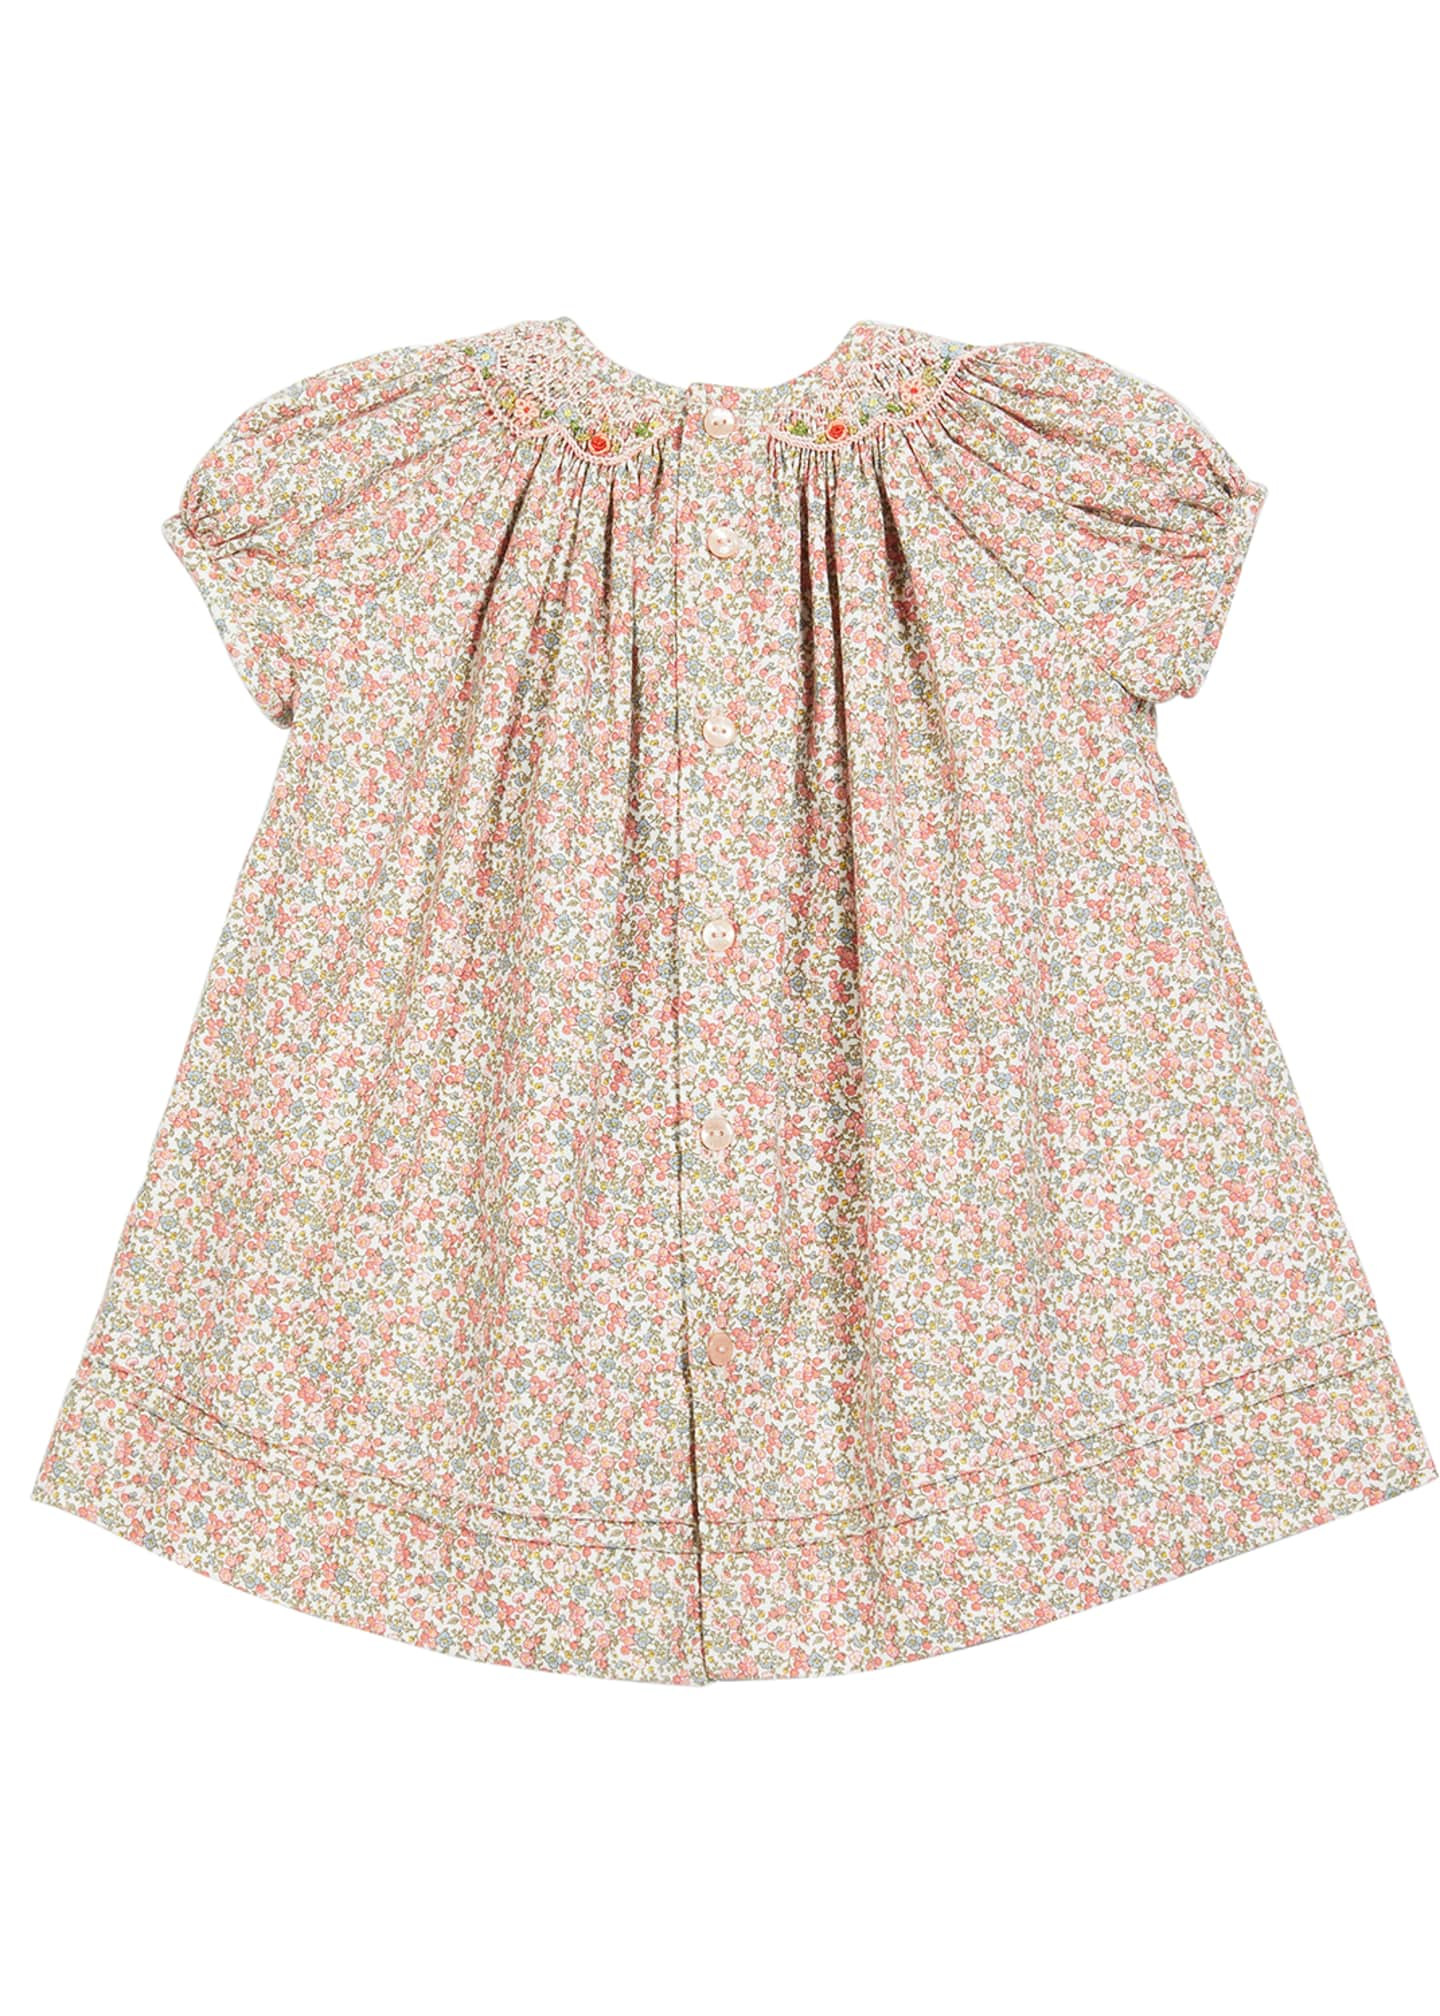 Image 2 of 2: Floral-Print Smocked Bishop Dress, Size 6-24 Months